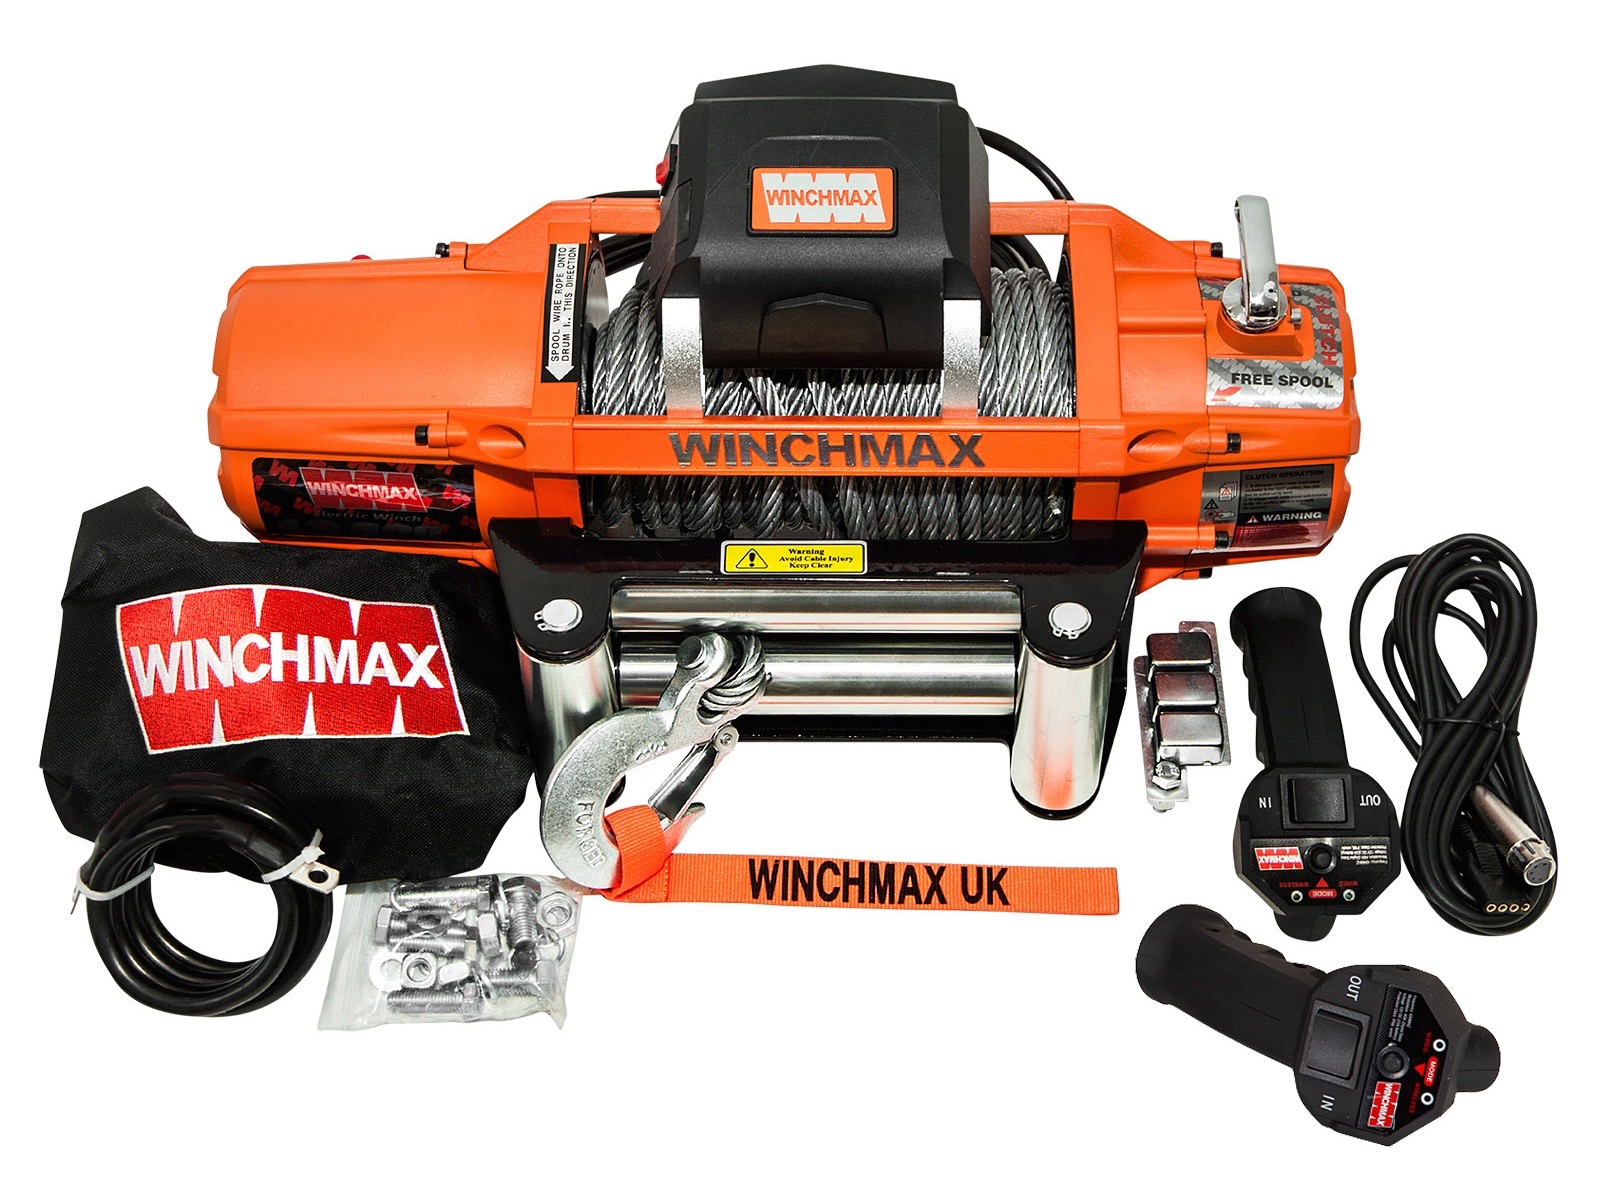 WINCHMAX SL13500LB 12V ELECTRIC STEEL CABLE WINCH WITH WIRELESS REMOTES